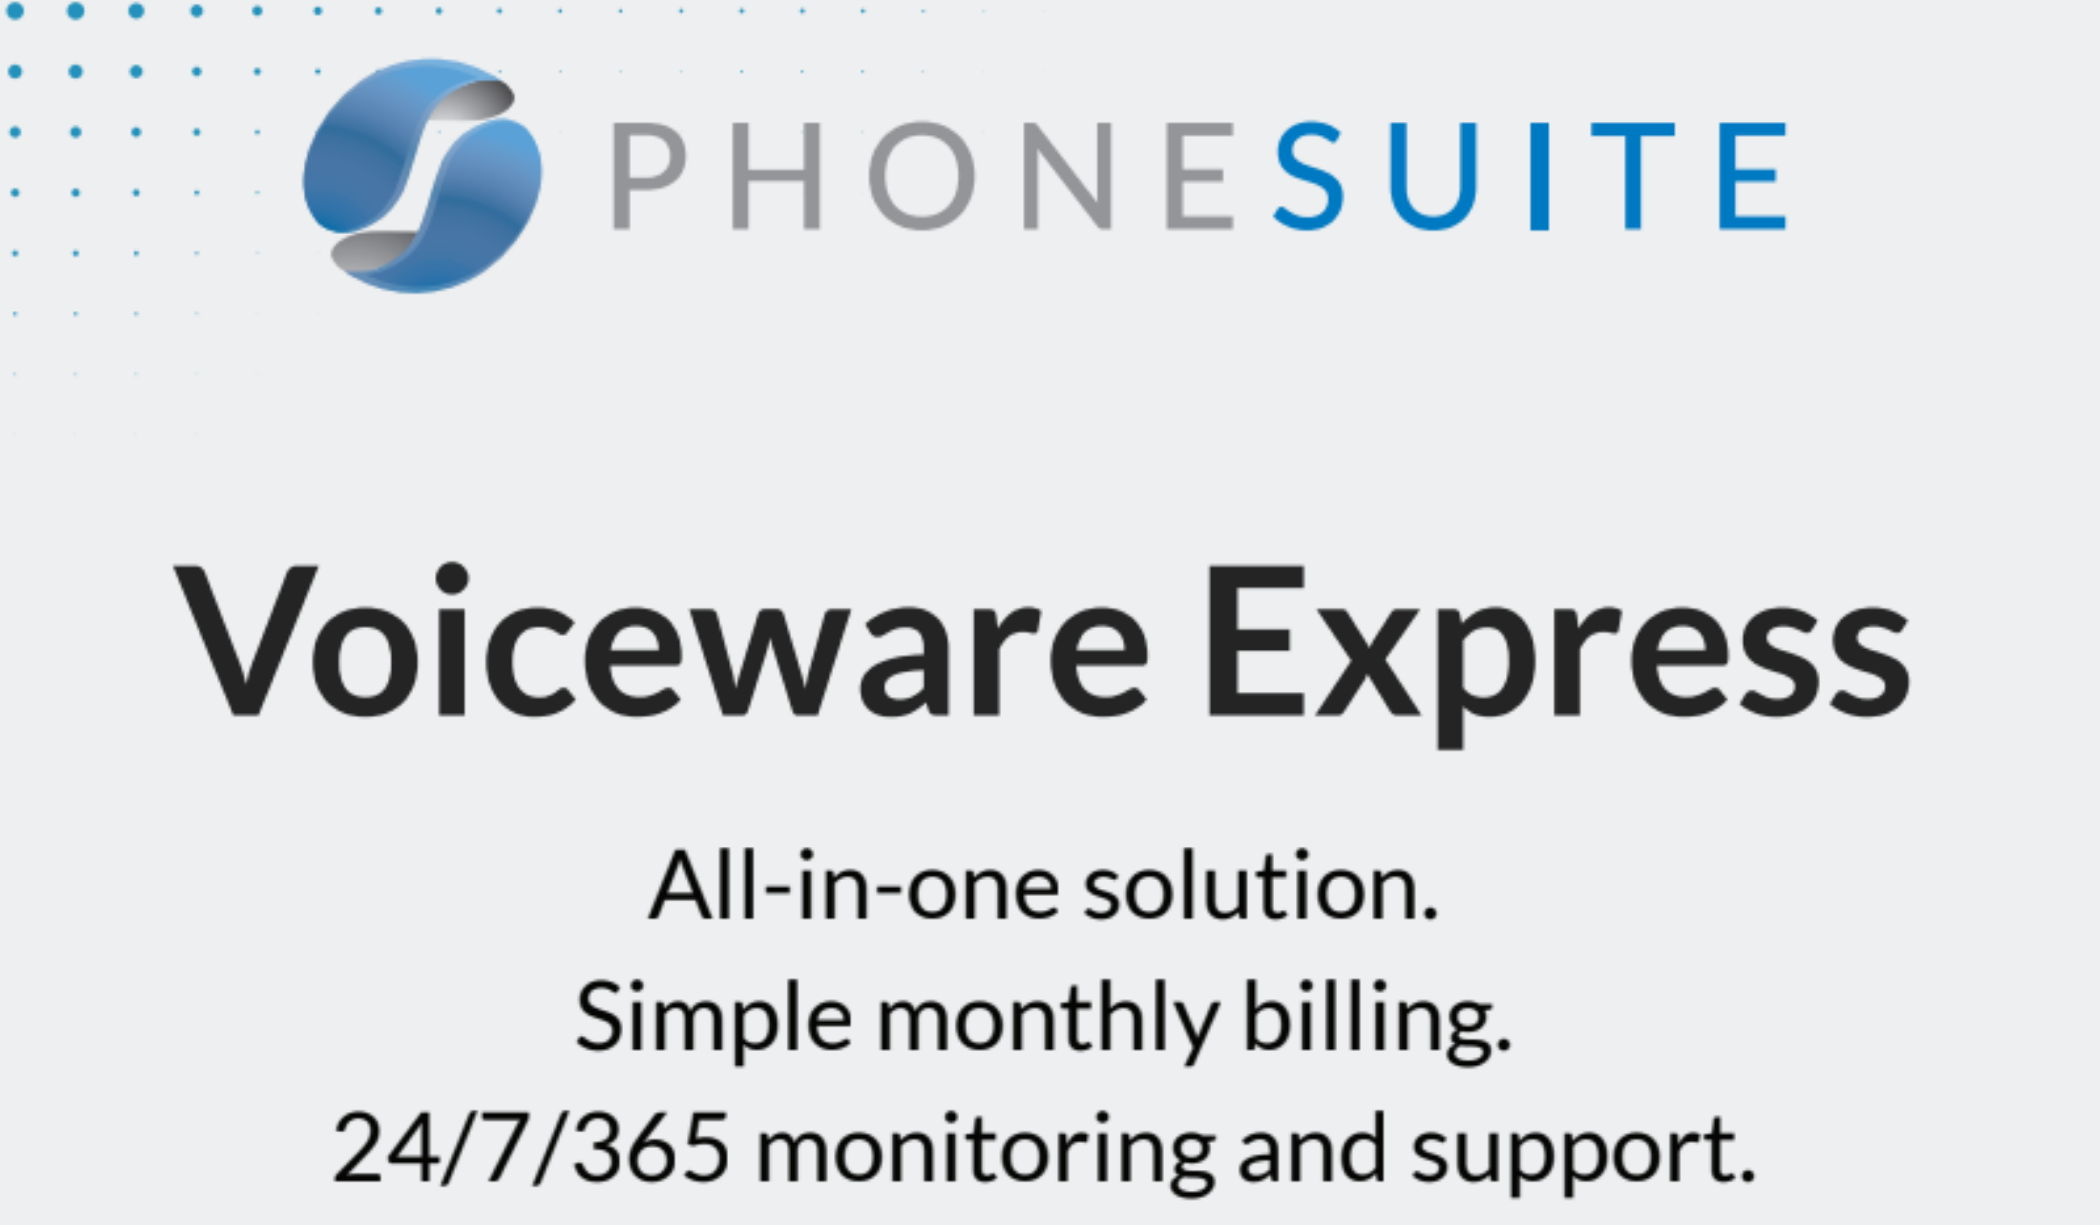 Phonesuite Announces Voiceware Express